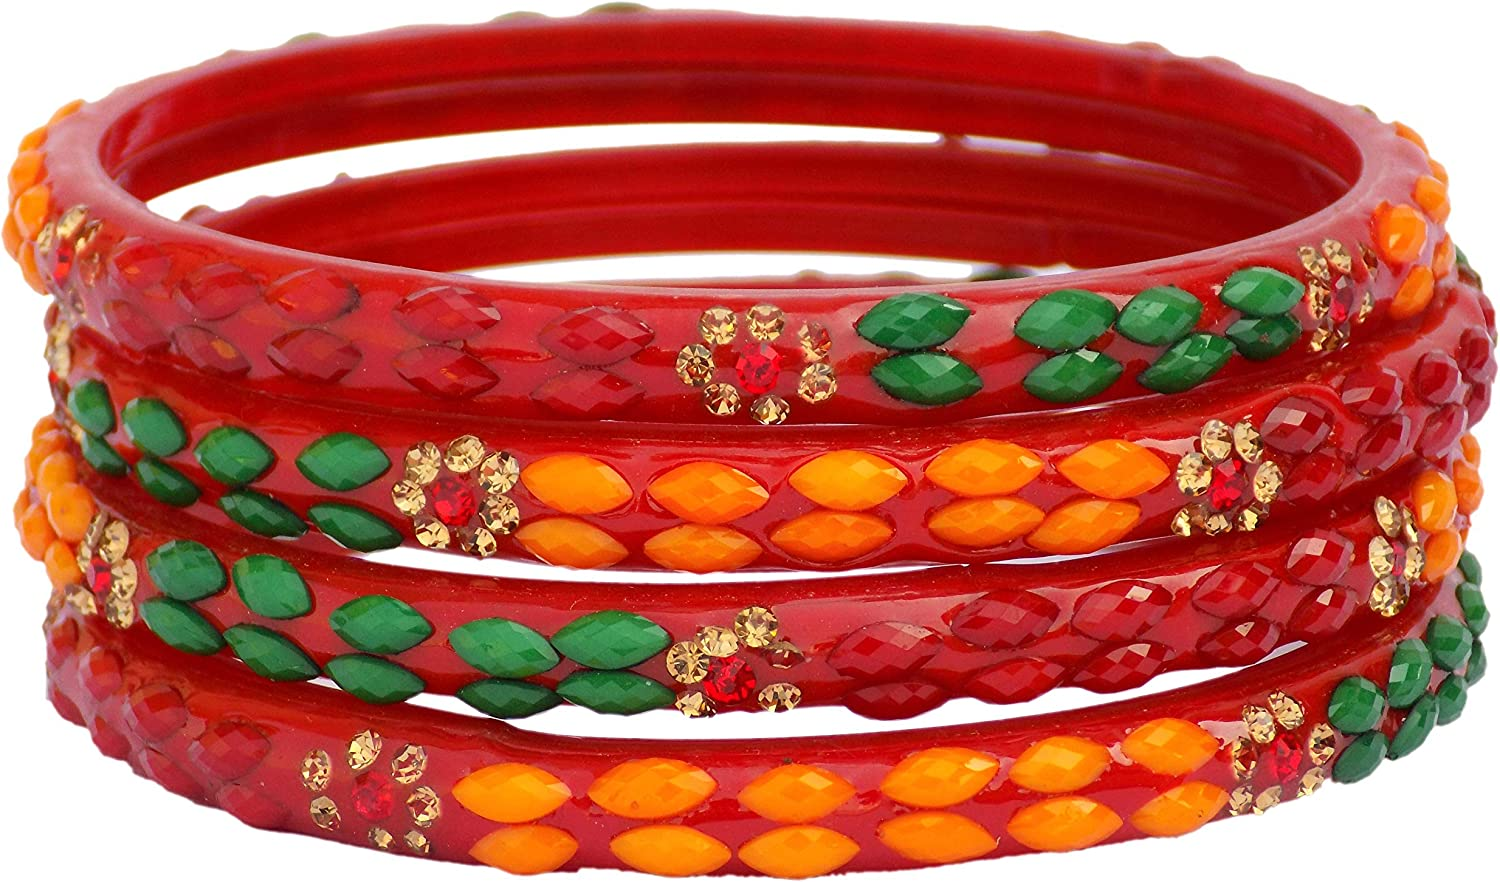 JD'Z Collection Indian Glass Bangles Jewelry Bangles Bracelet for Wedding,Party Bangles,Glass Bangles Set of 4 Multi